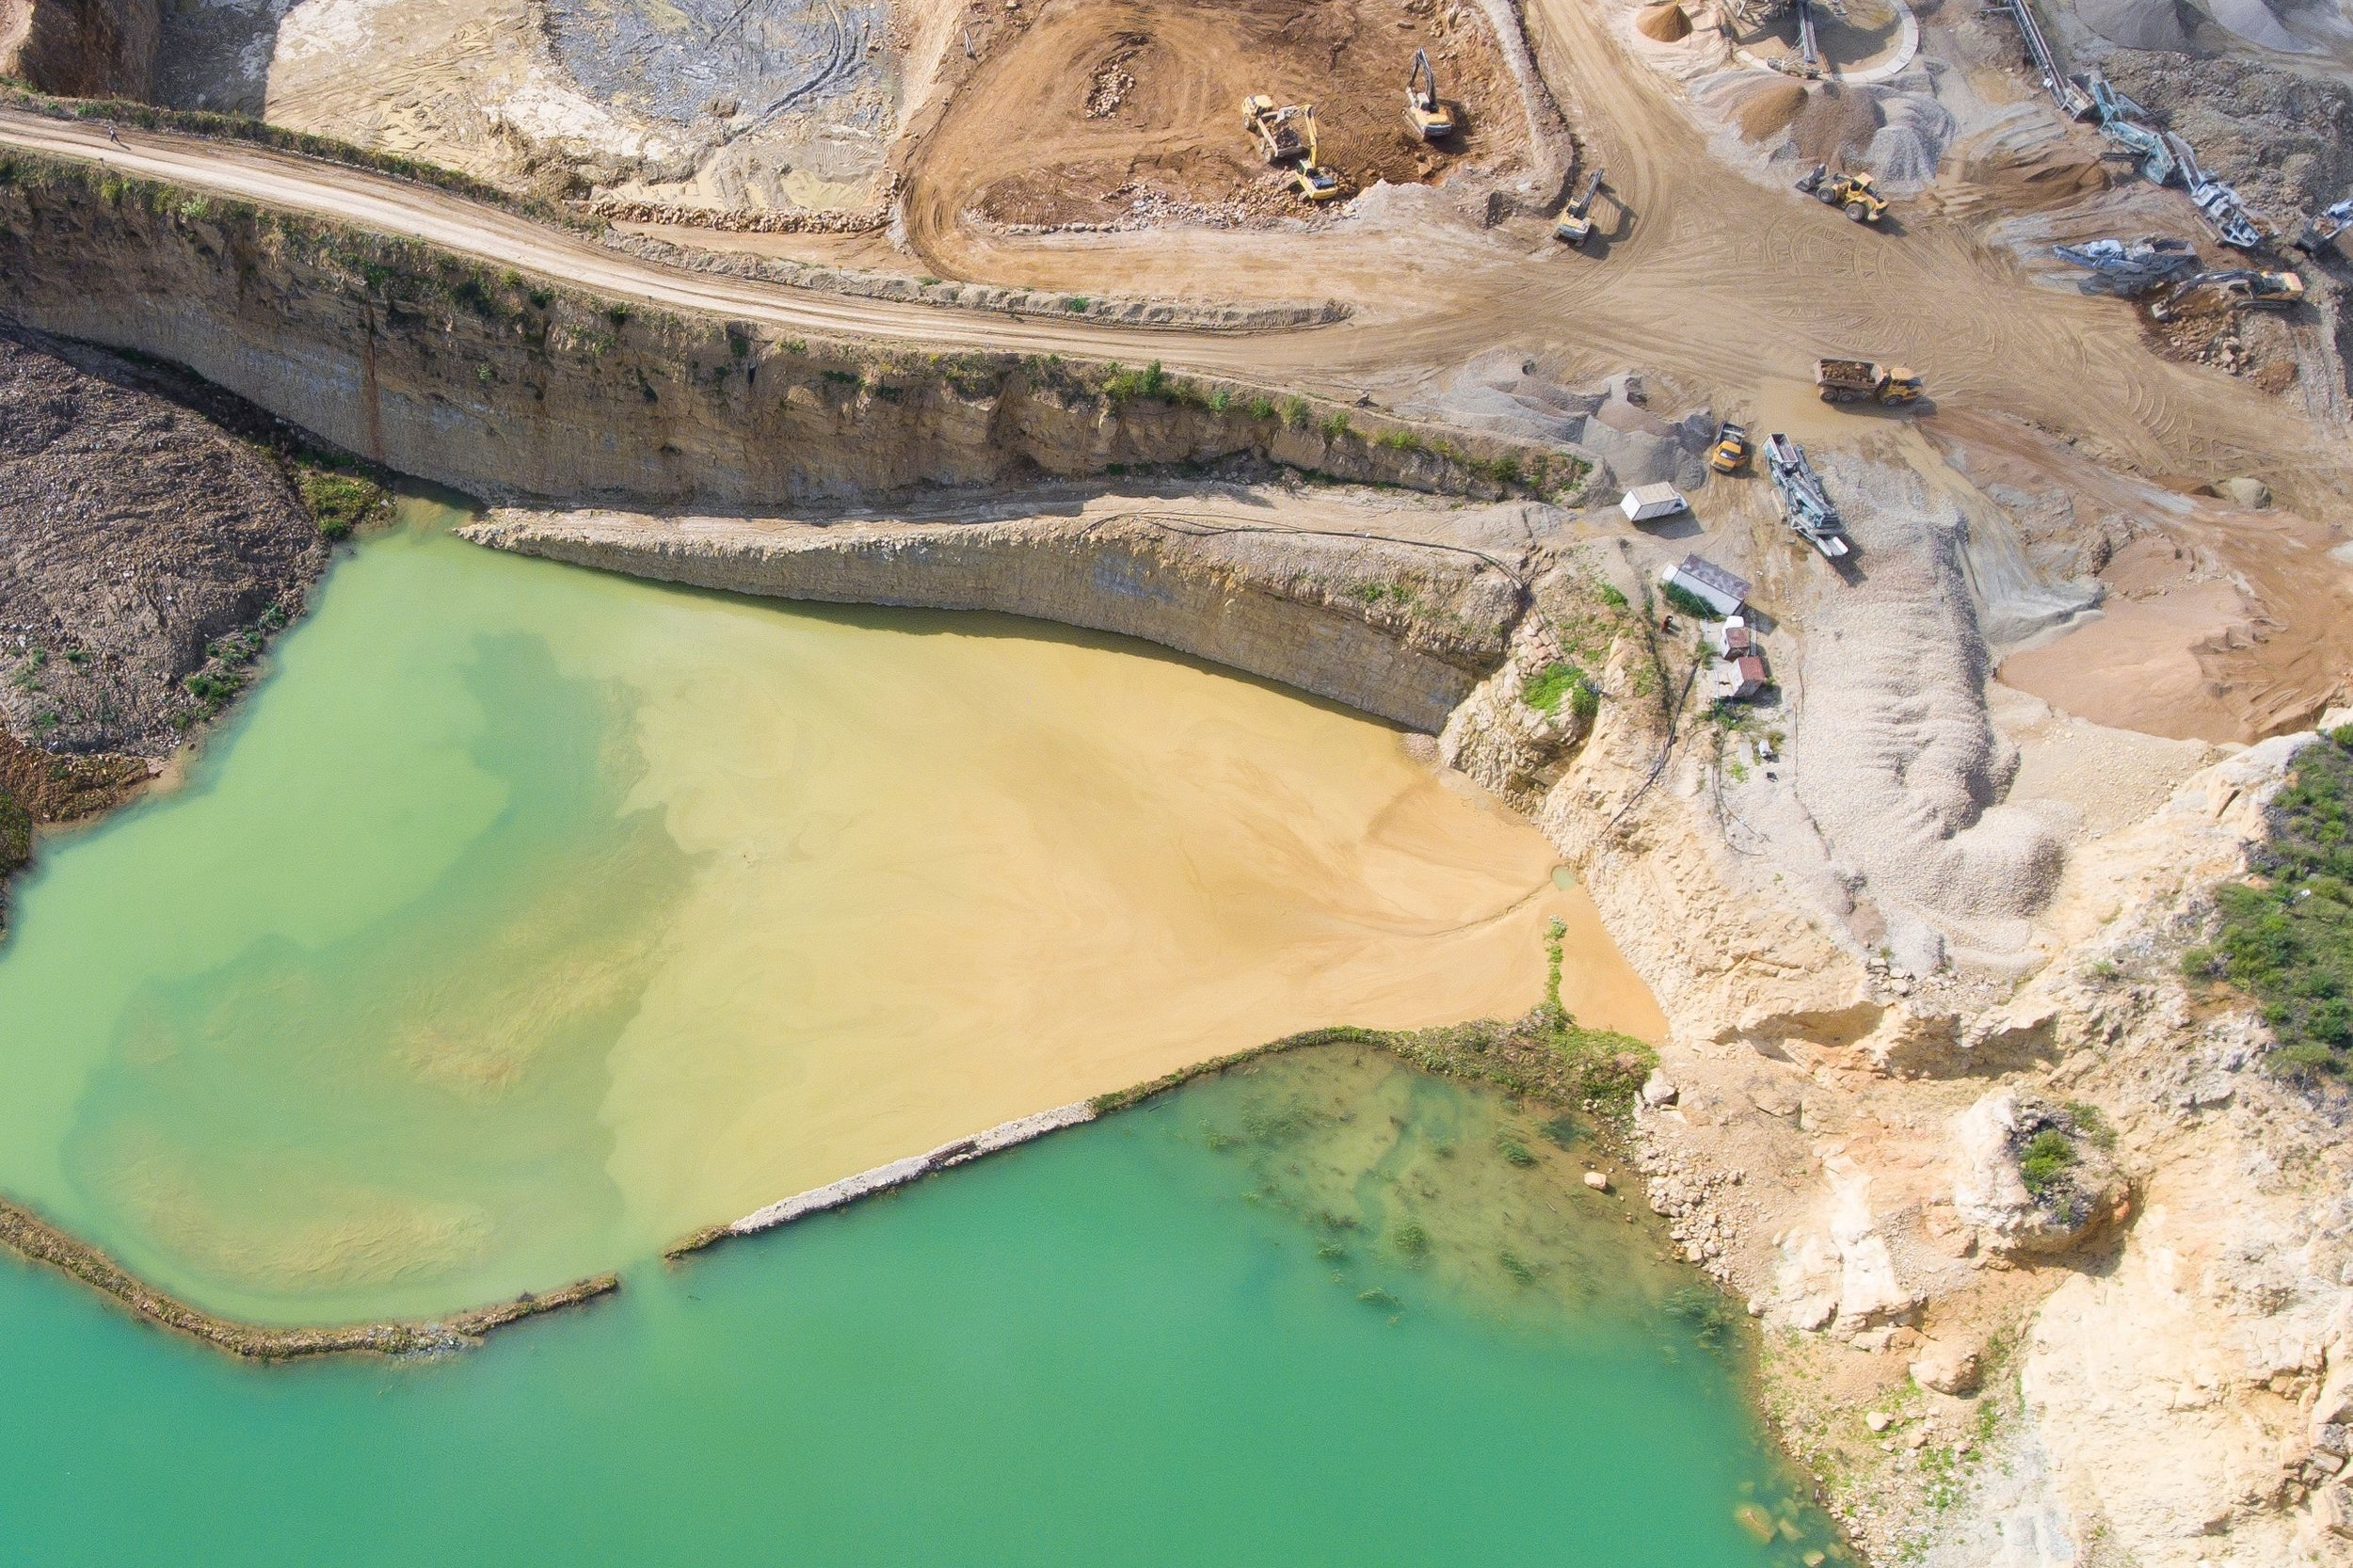 Mine Waste Storage - Thousands of tailings dams in current operation must be maintained indefinitely to avoid failure. Can geopolymer stabilization enable a better, safer alternative to tailings dams that require no long-term maintenance?